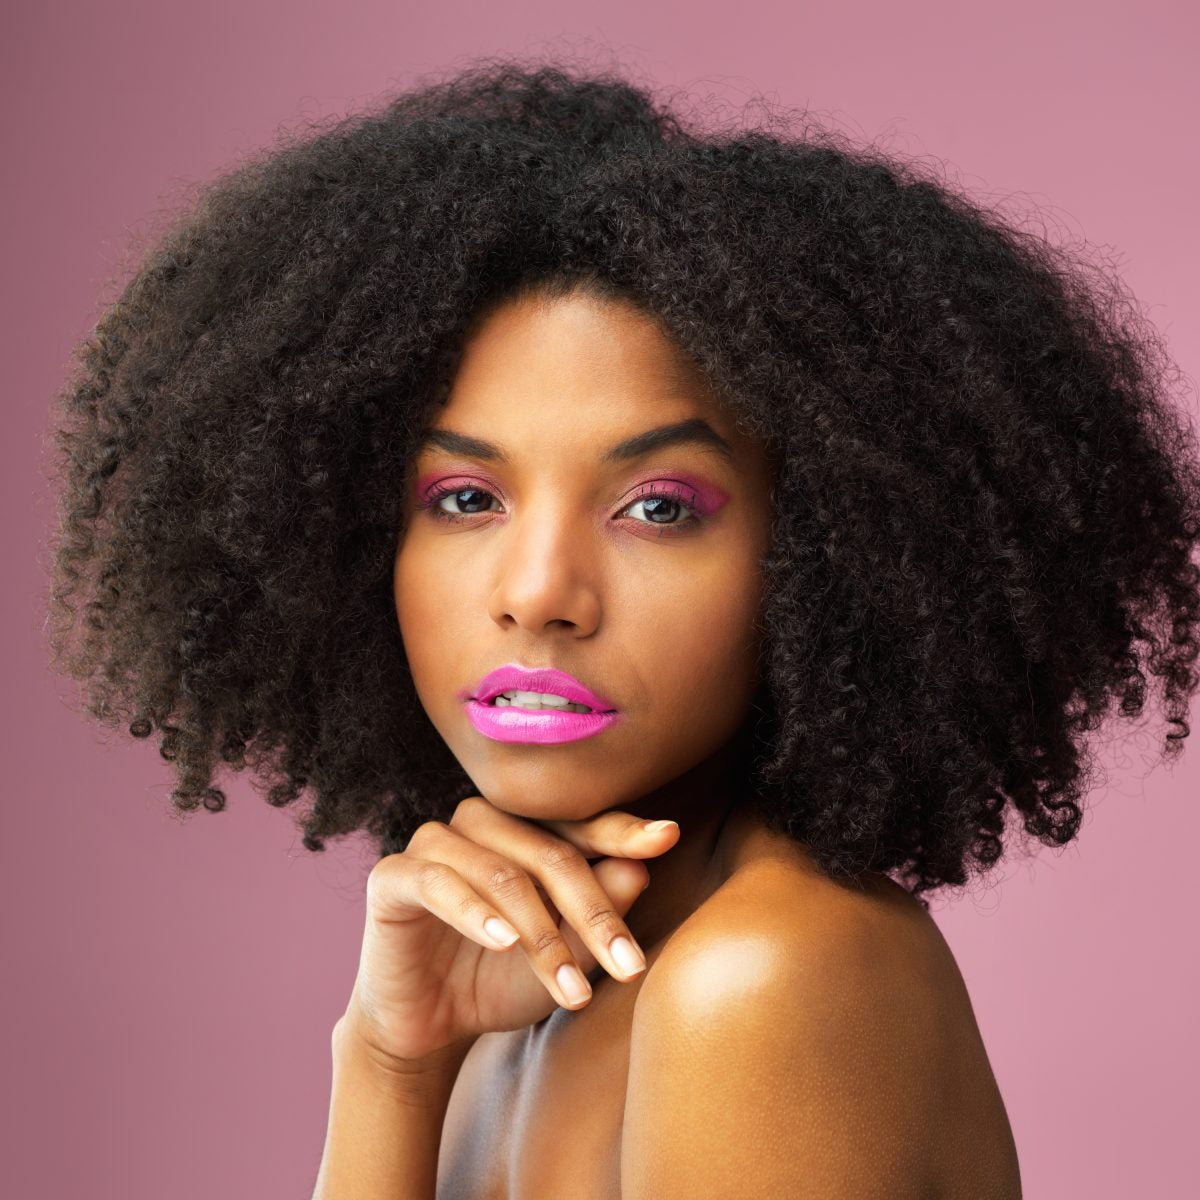 5 Things You May Not Know About Starting a Beauty Line